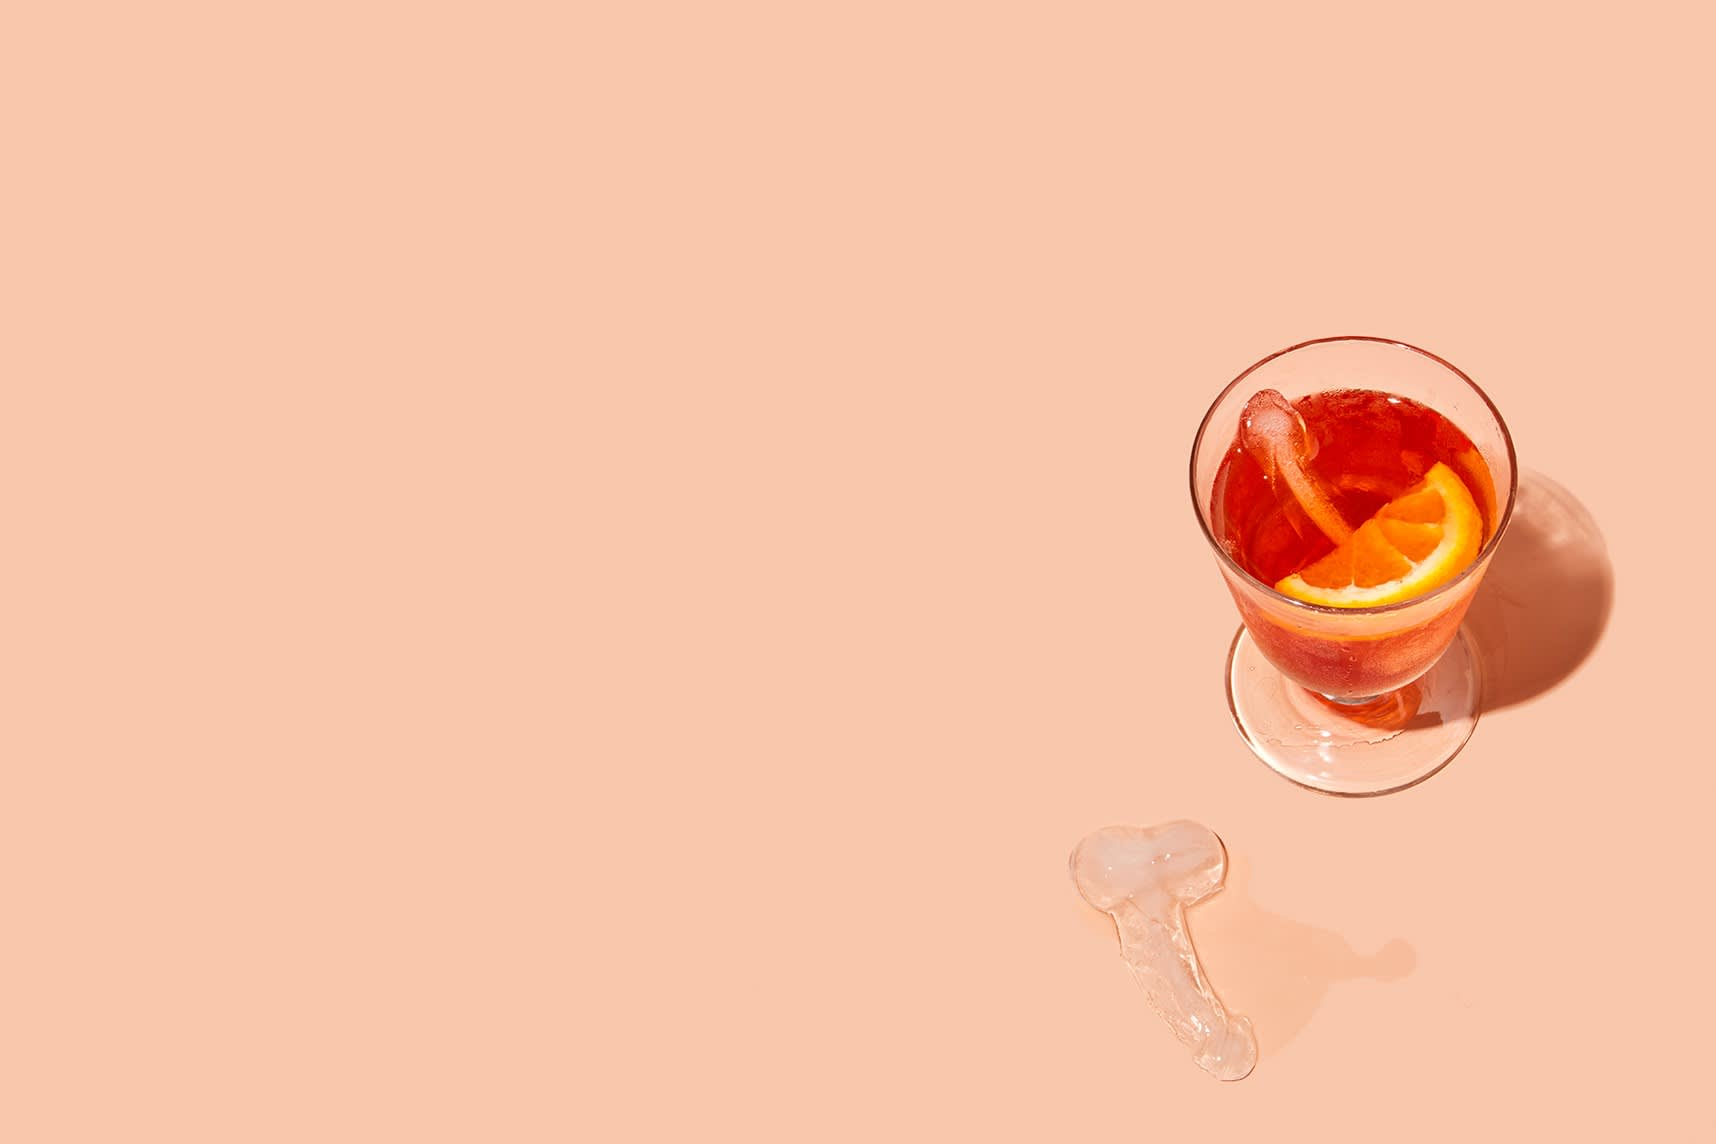 A red drink with a lemon slice in a glass